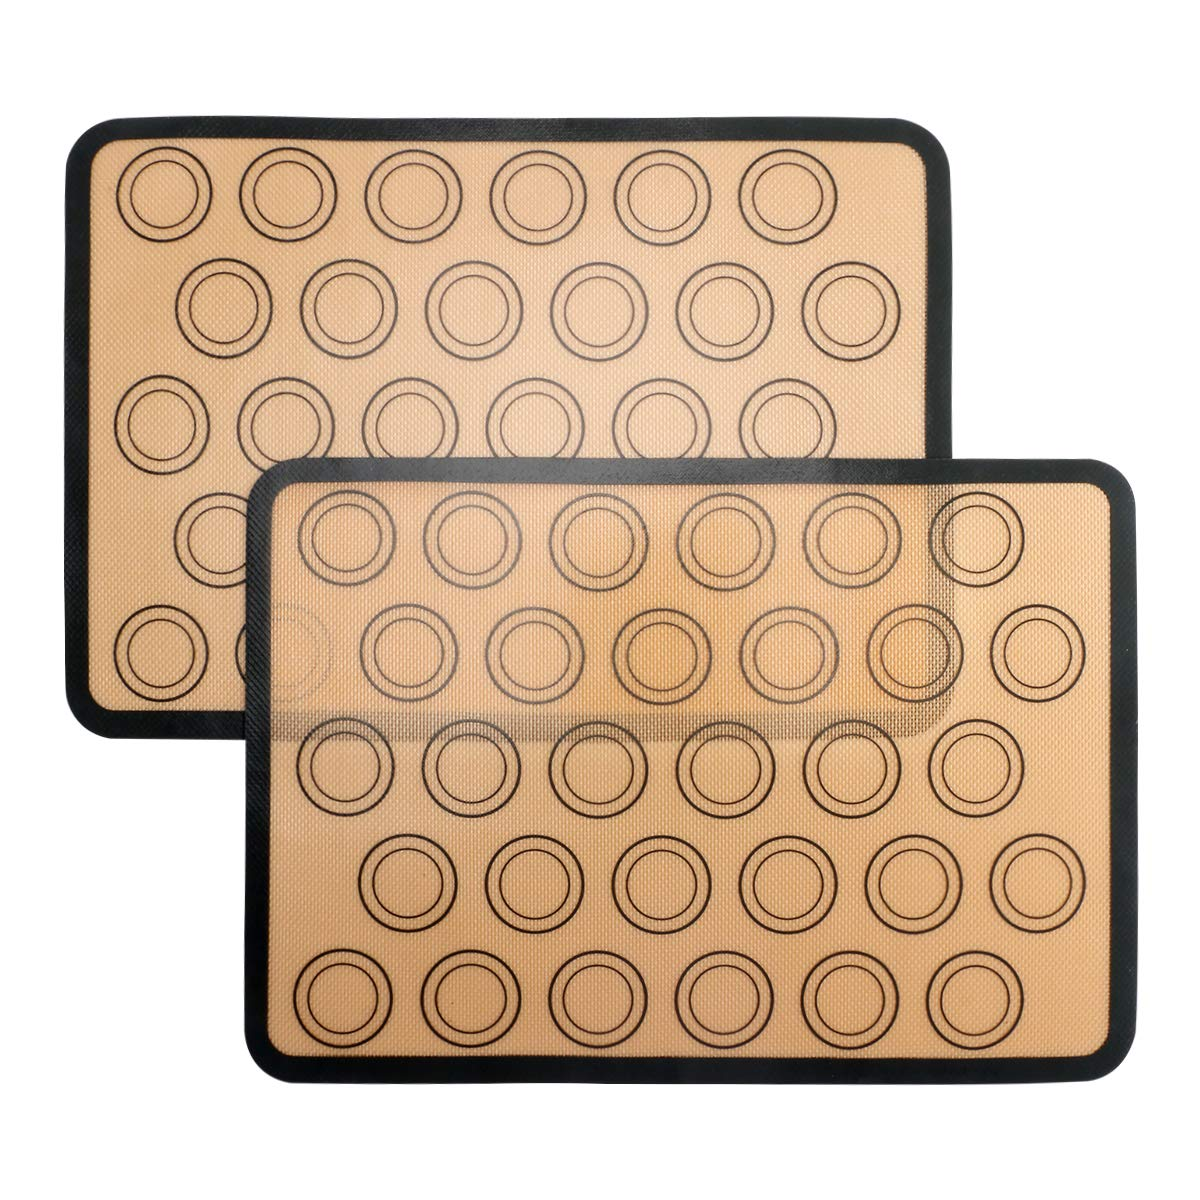 Silicone Baking Mat, 2-Pack Non-Stick Silicone Baking Sheet for Bake Pans & Rolling, Half Sheet (16-1/2'' x 11-5/8'') Silicon Liner for Macaron Pastry Cookie Bun Bread Making by KAILEDI